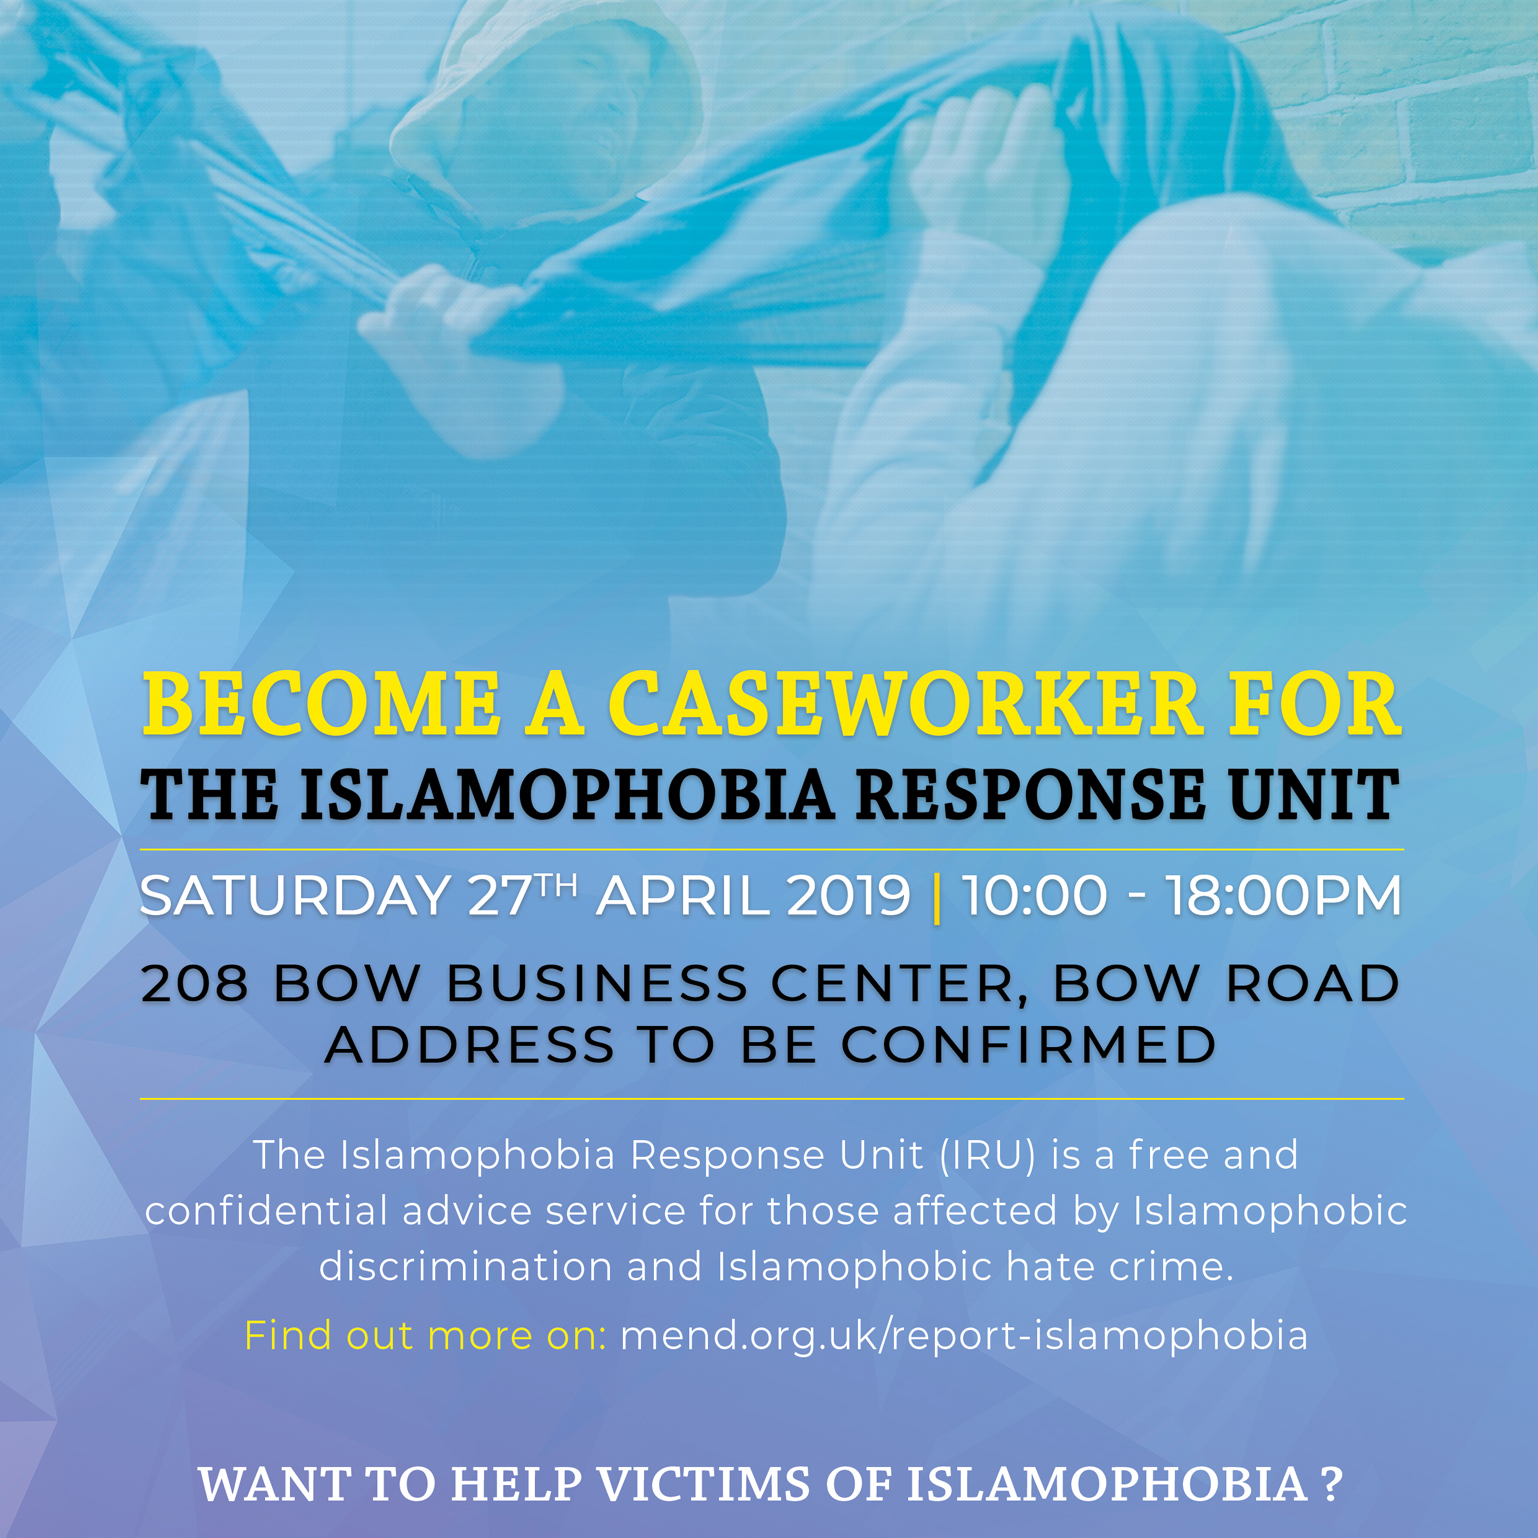 Become a caseworker for the Islamophobia Response Unit